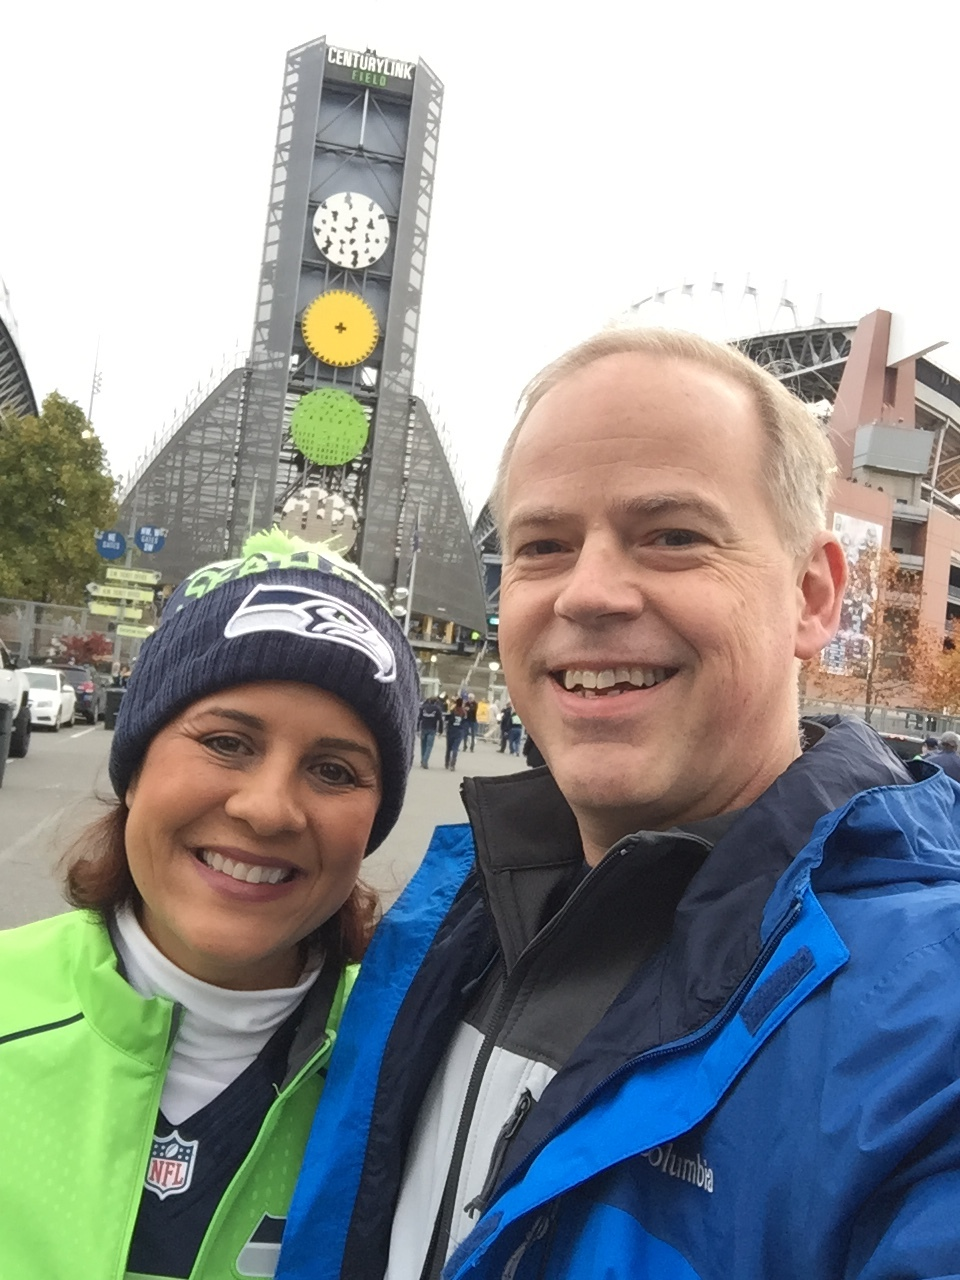 Game Day at Century Link - www.stampedwithaloha.com